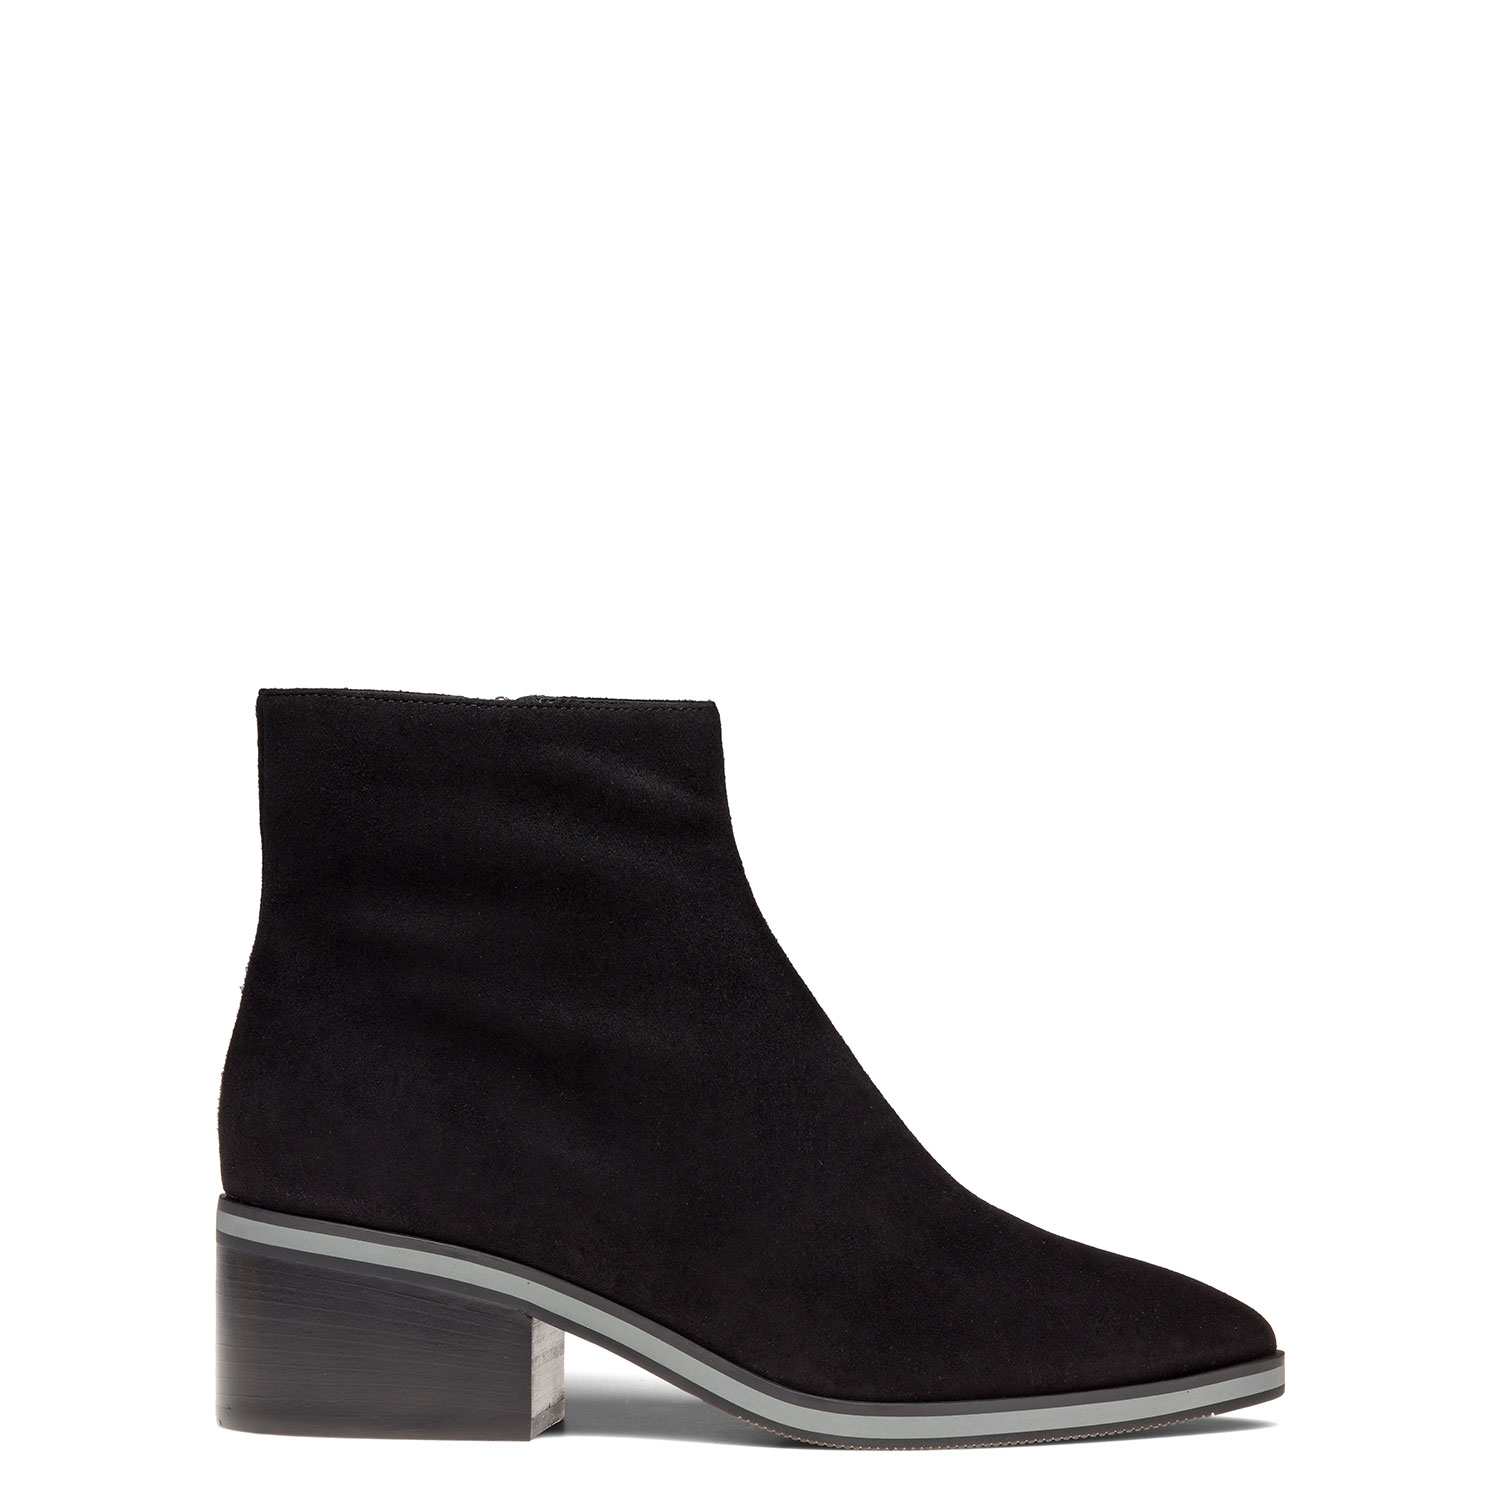 Women's cold weather ankle boots CARLO PAZOLINI FL-JON2-1V